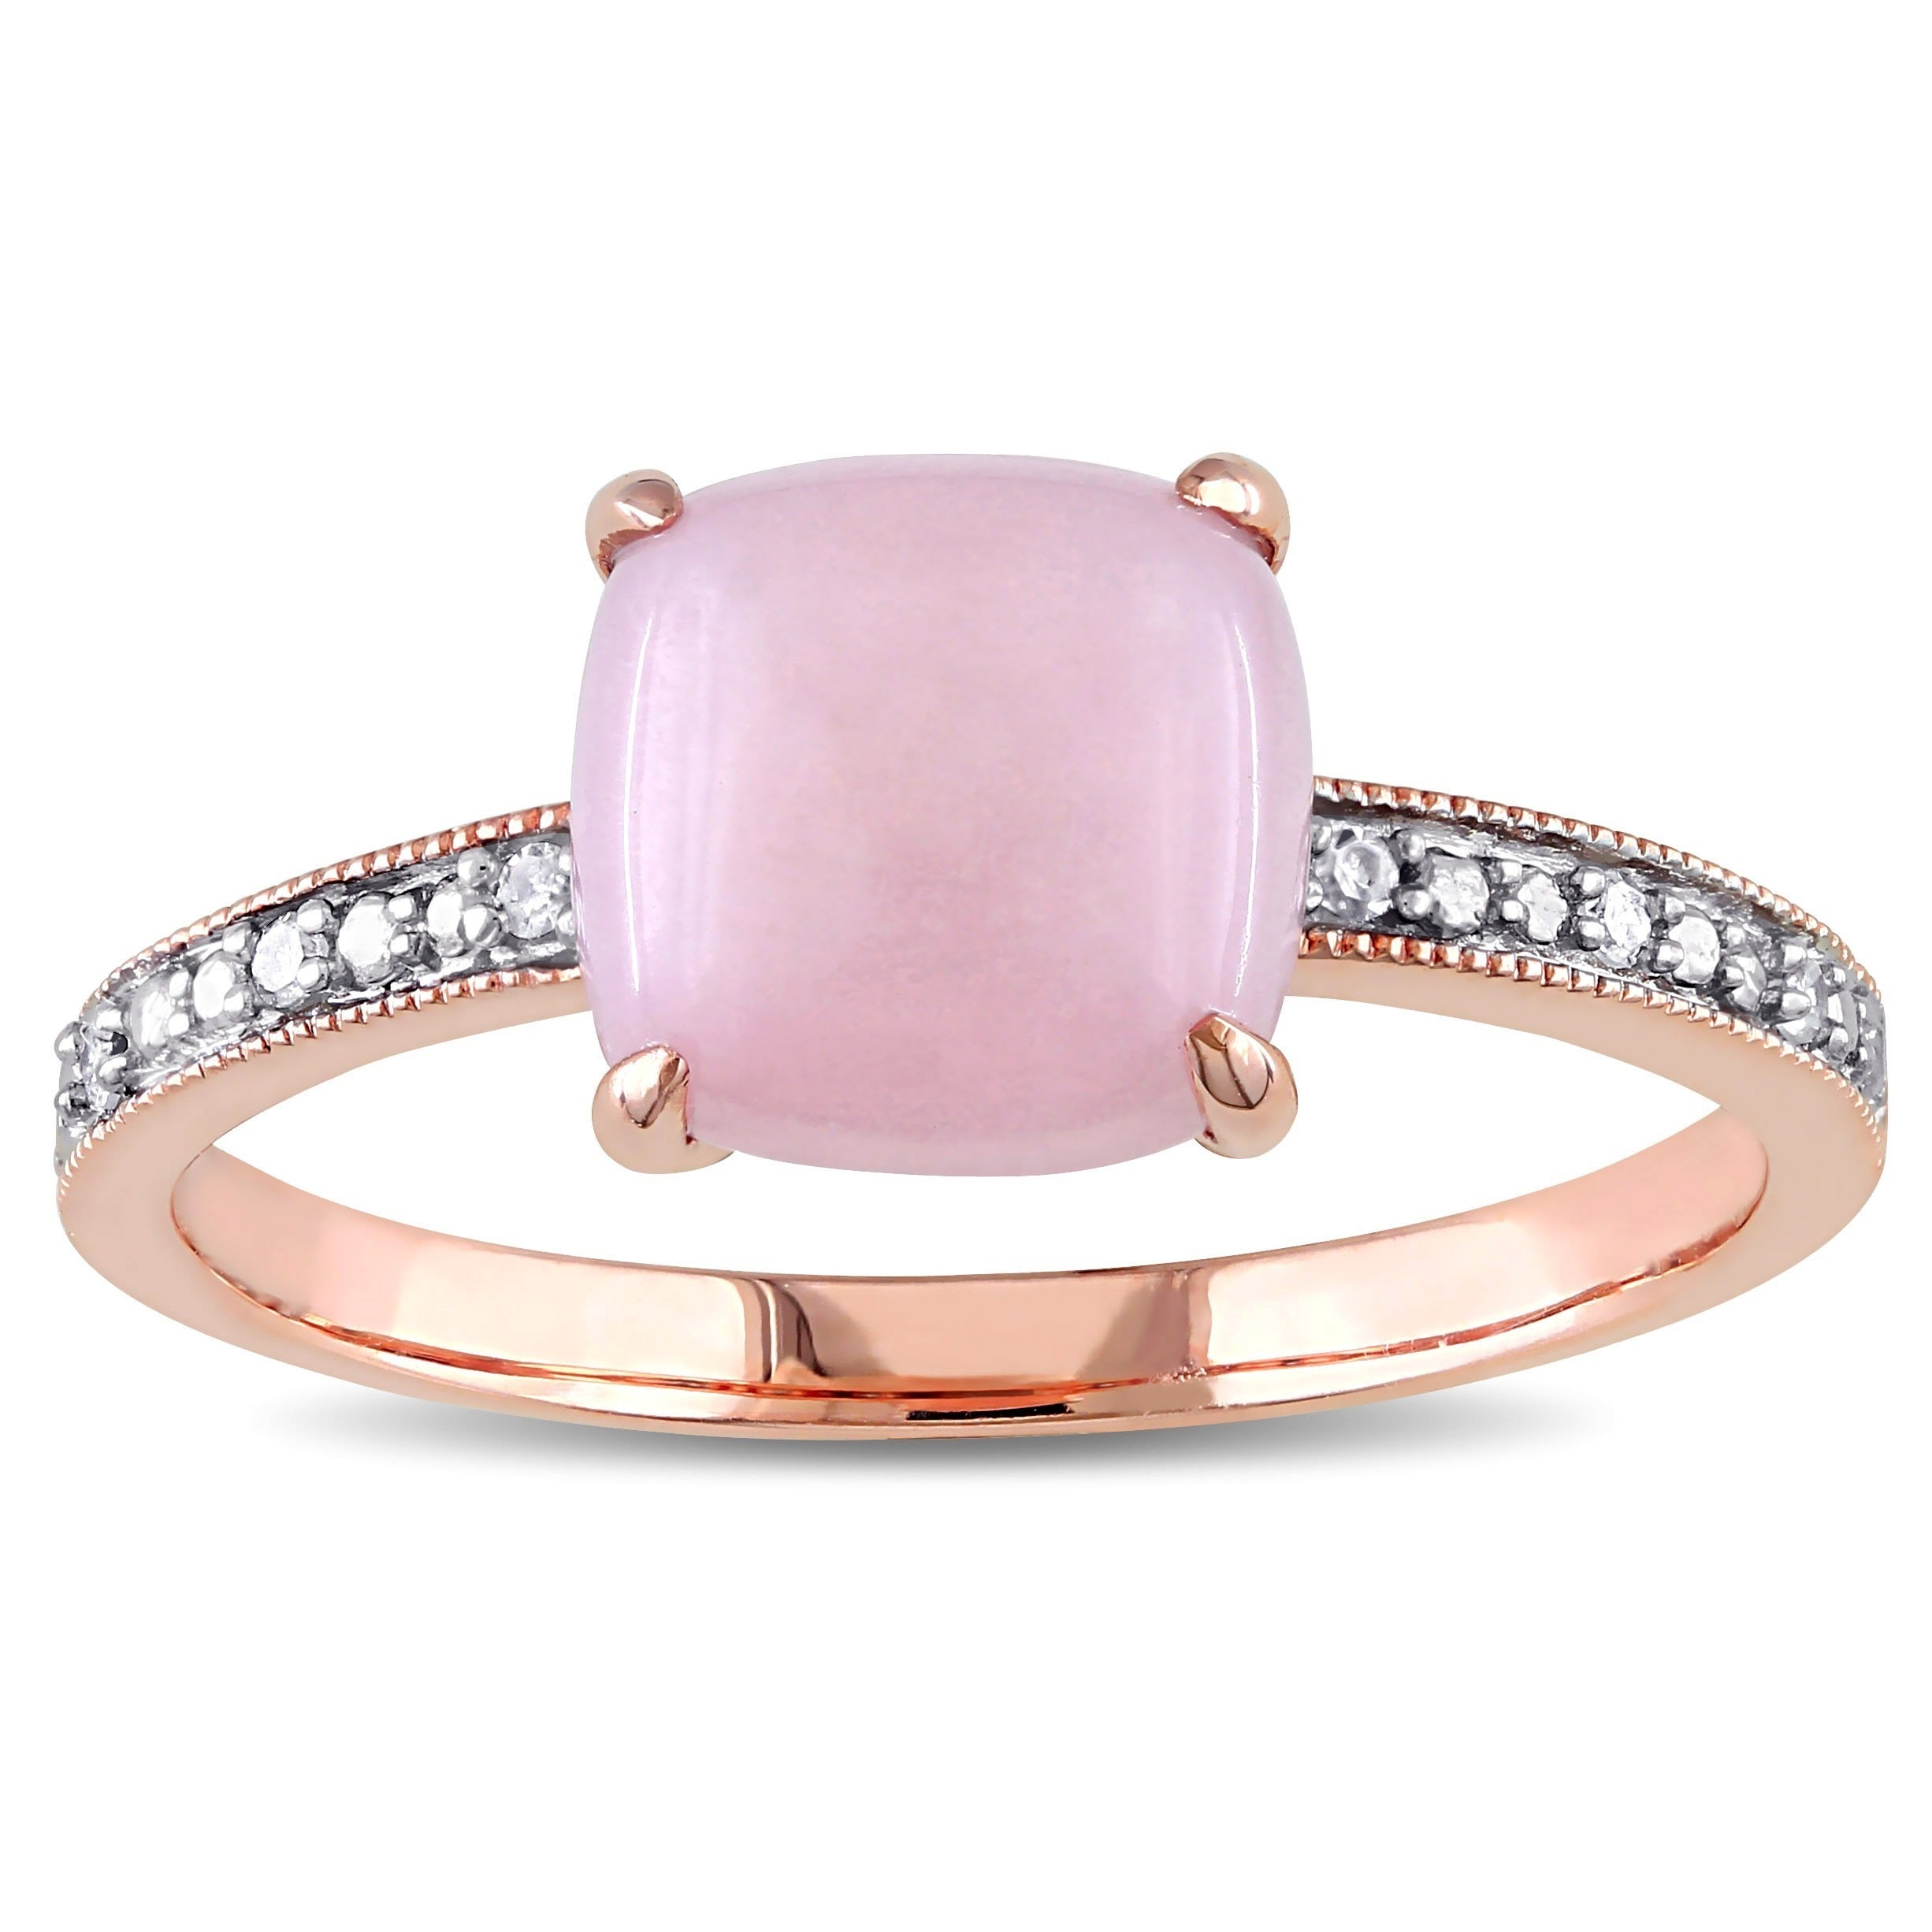 Buy Opal, Solitaire Gemstone Rings Online at Overstock.com | Our ...